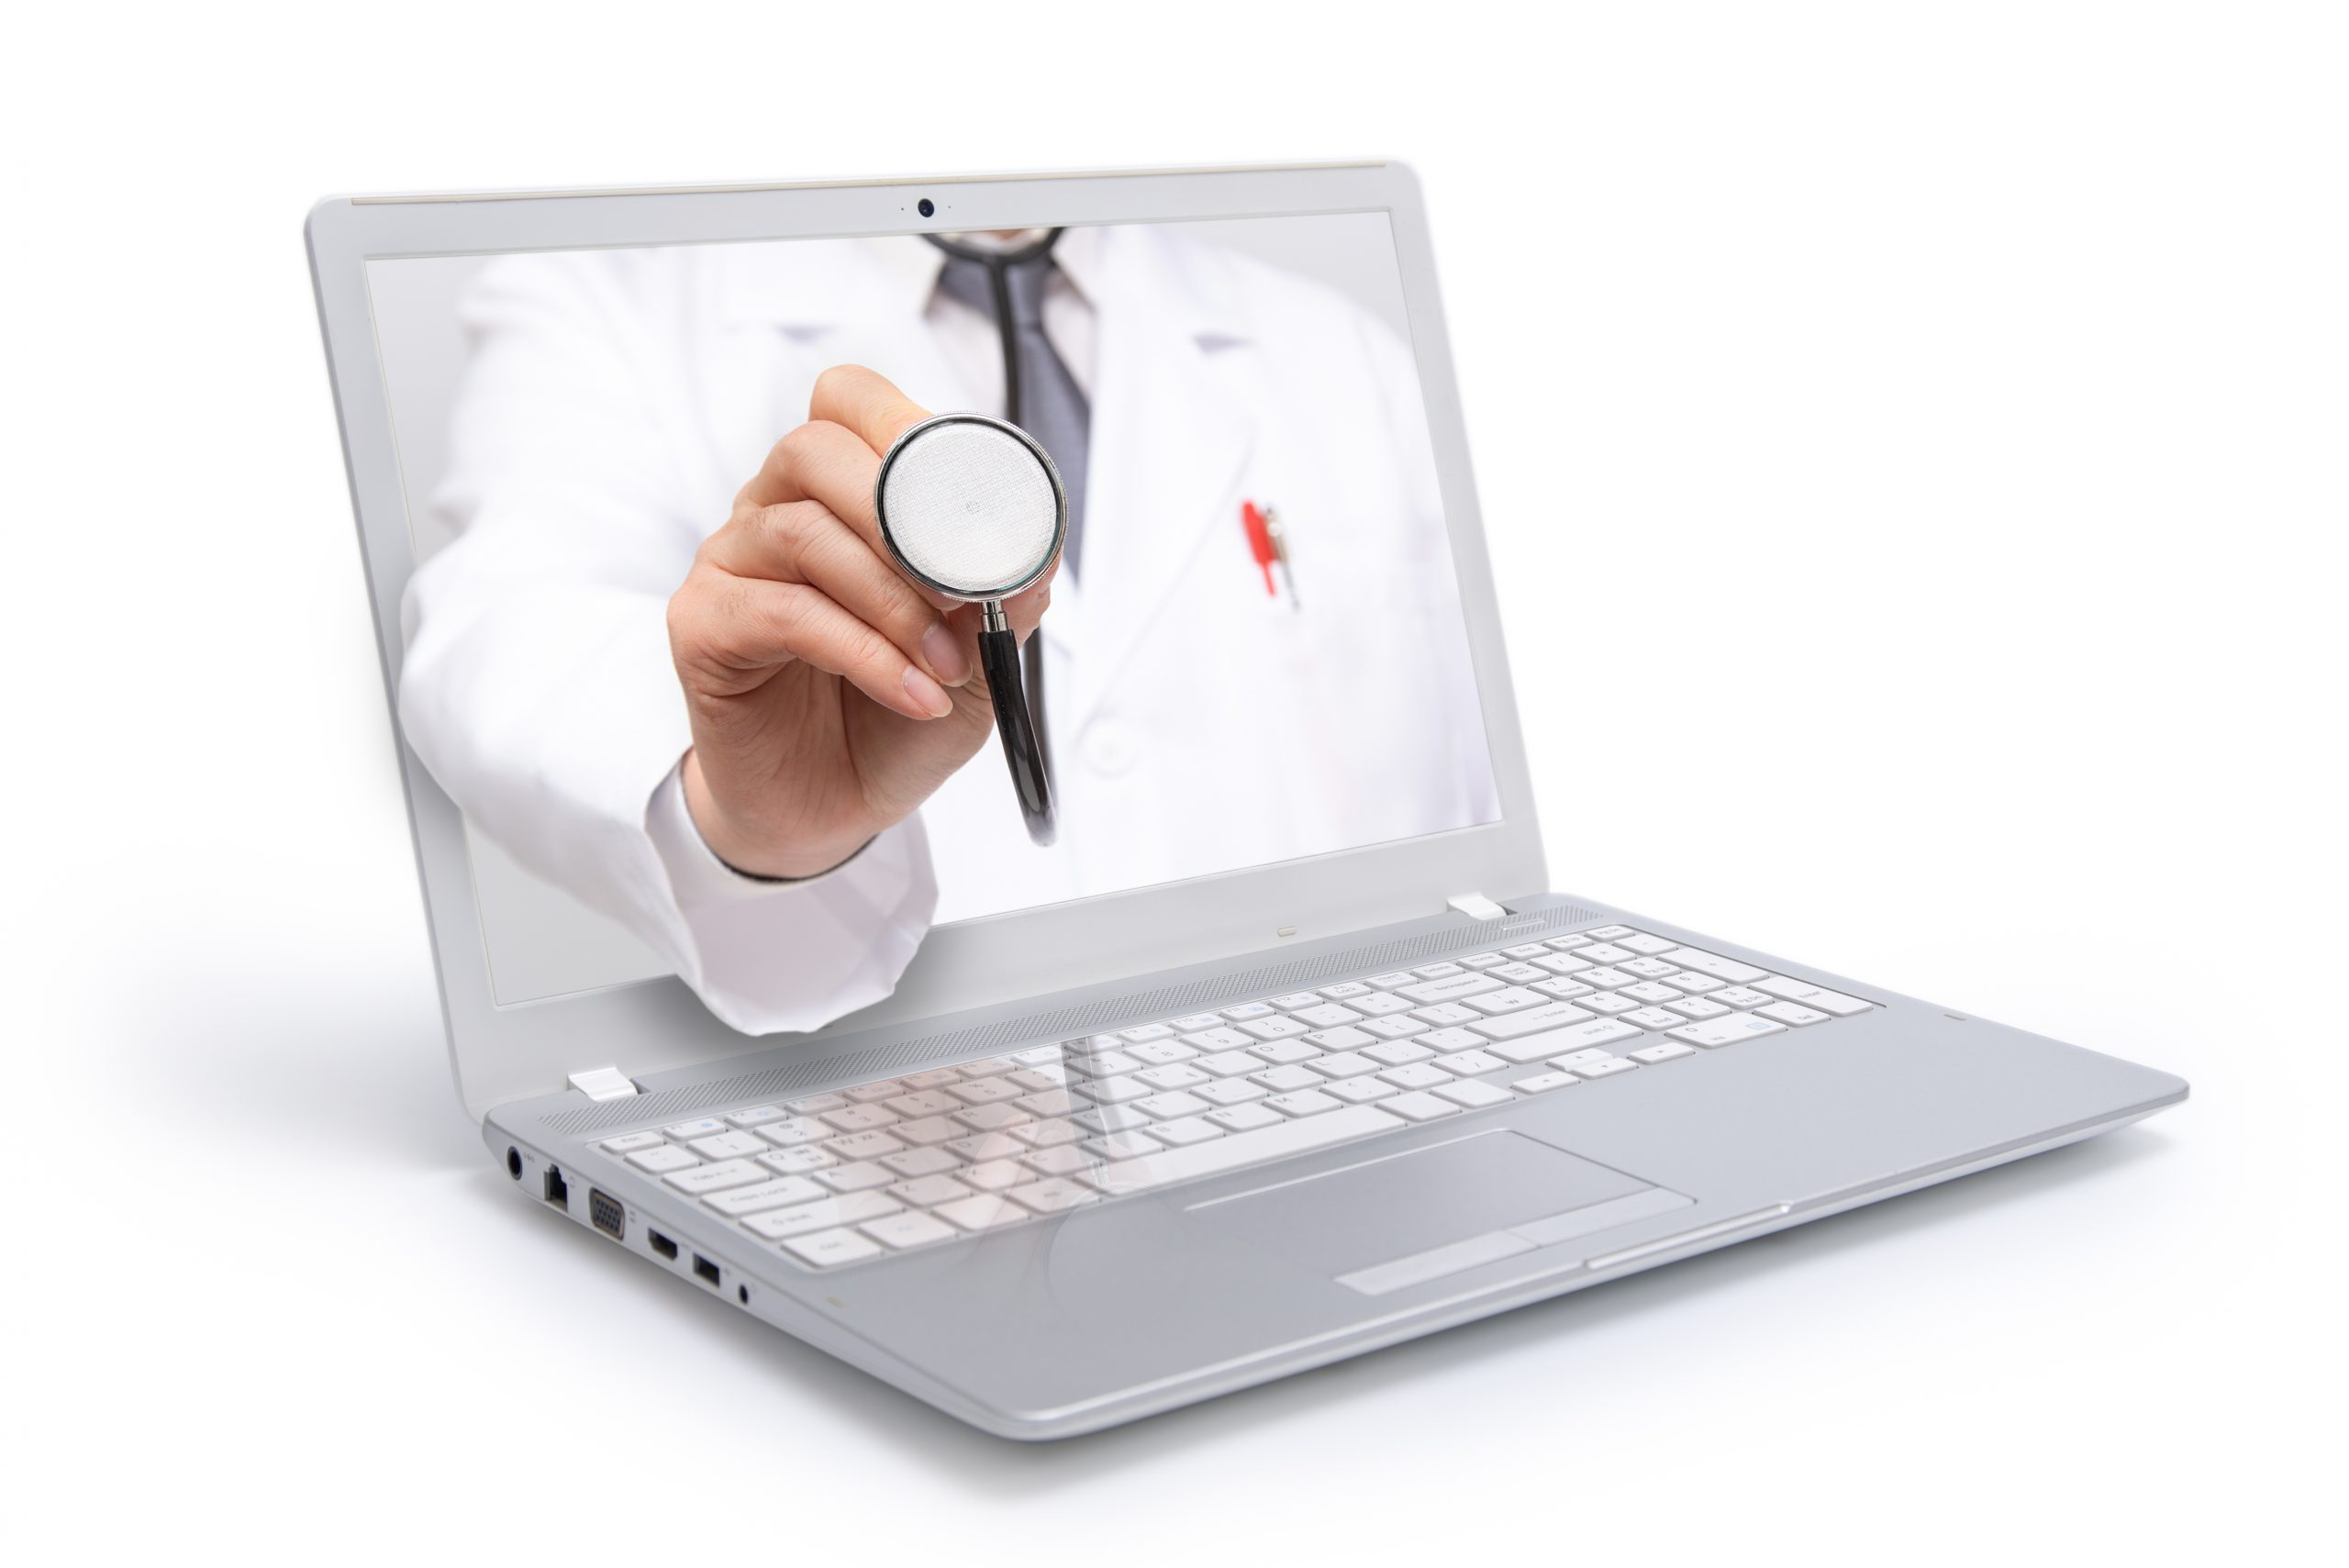 A doctor's stethoscope reaches through a computer screen, representing the medical care that is provided online via telemedicine or telehealth services.